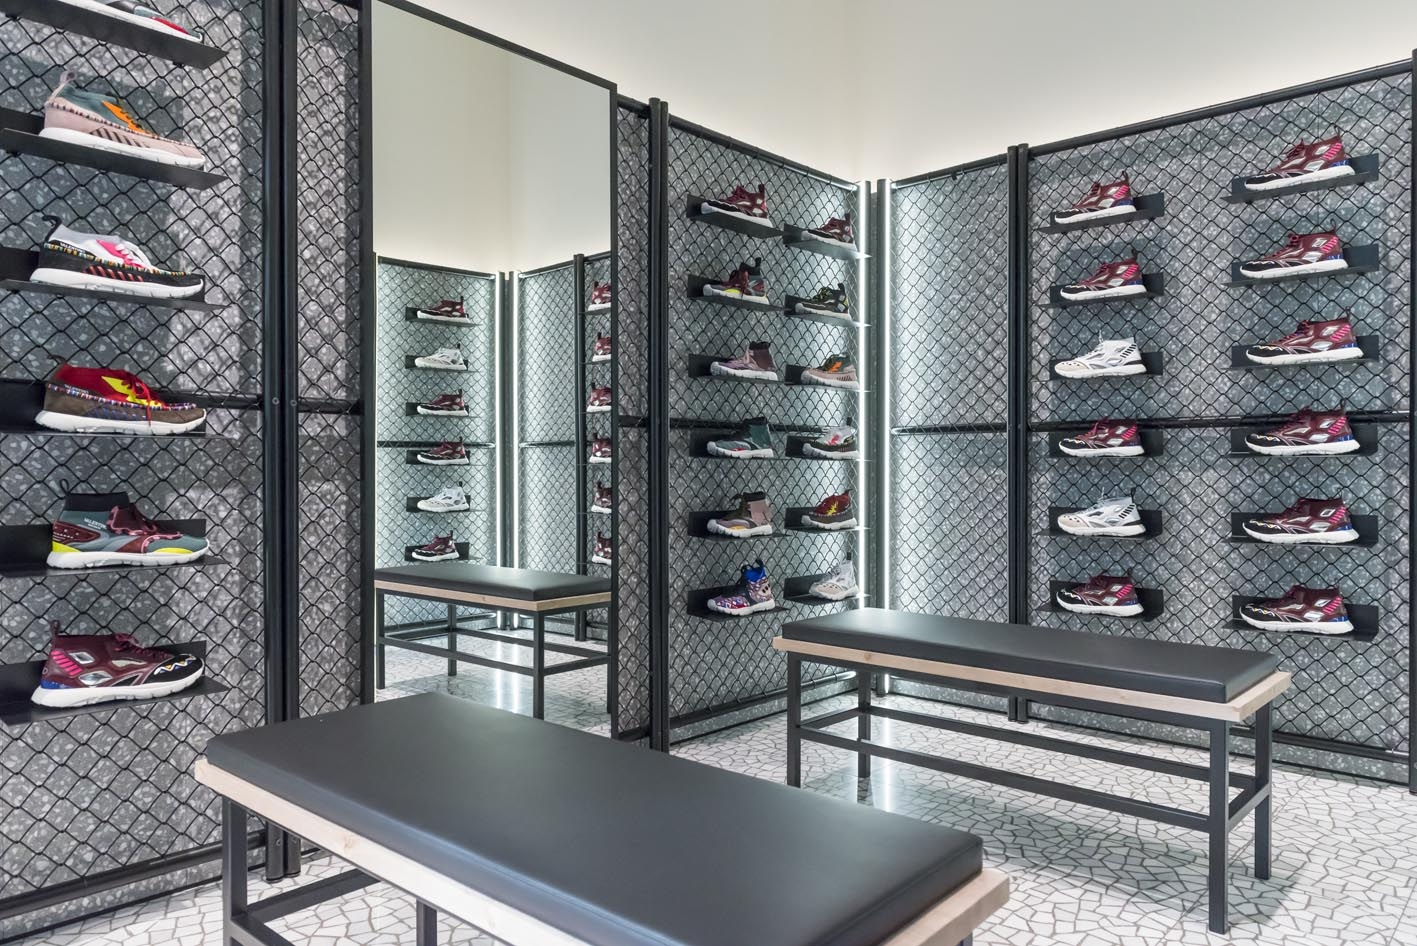 florence-vltn-store-installation-at-valentino-tornabuoni-store-16